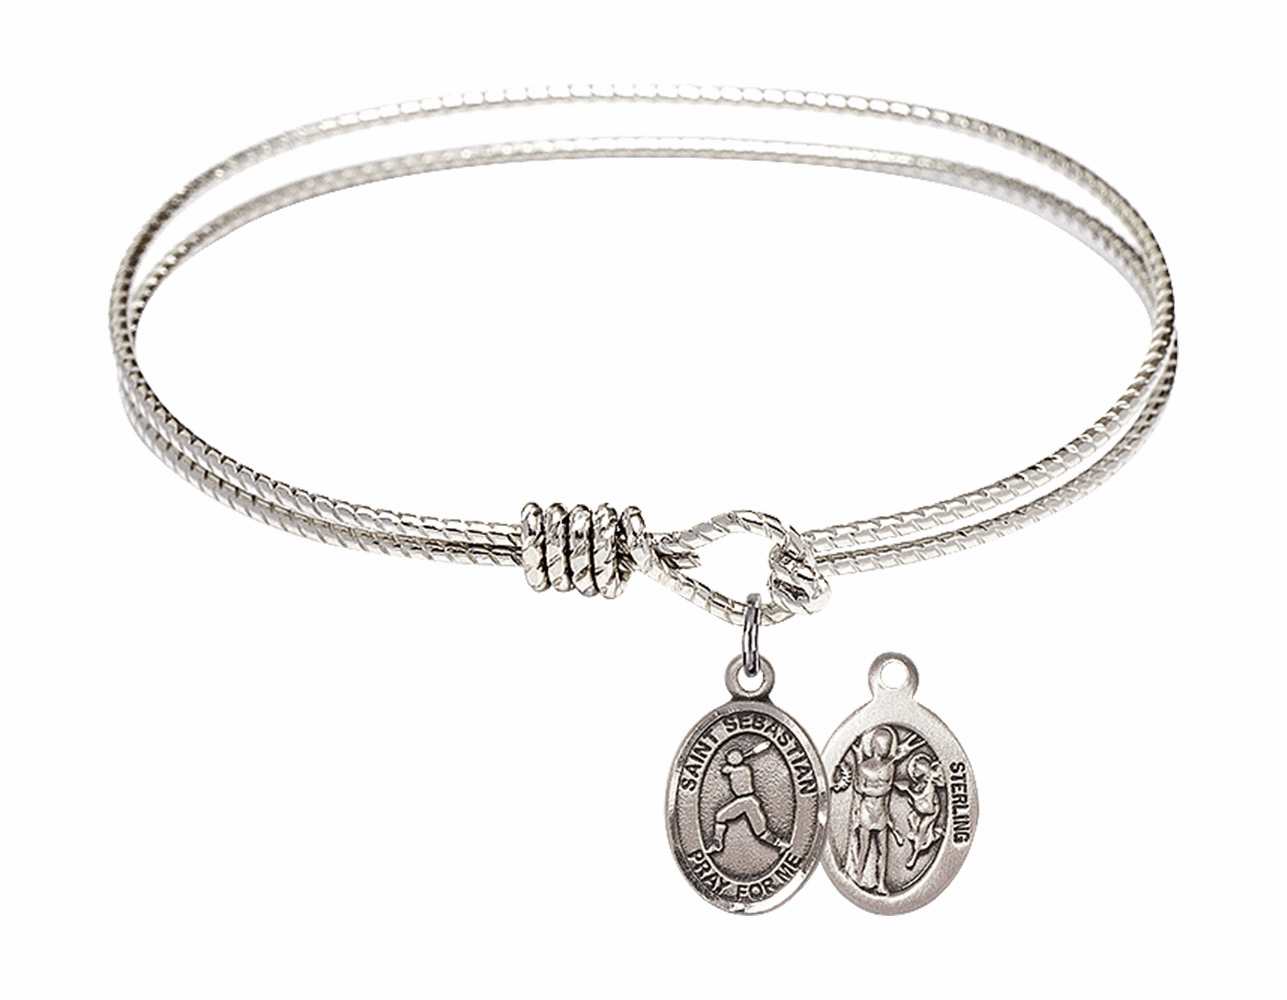 Twist Round Eye Hook St Sebastian Baseball Bangle Charm Bracelet by Bliss